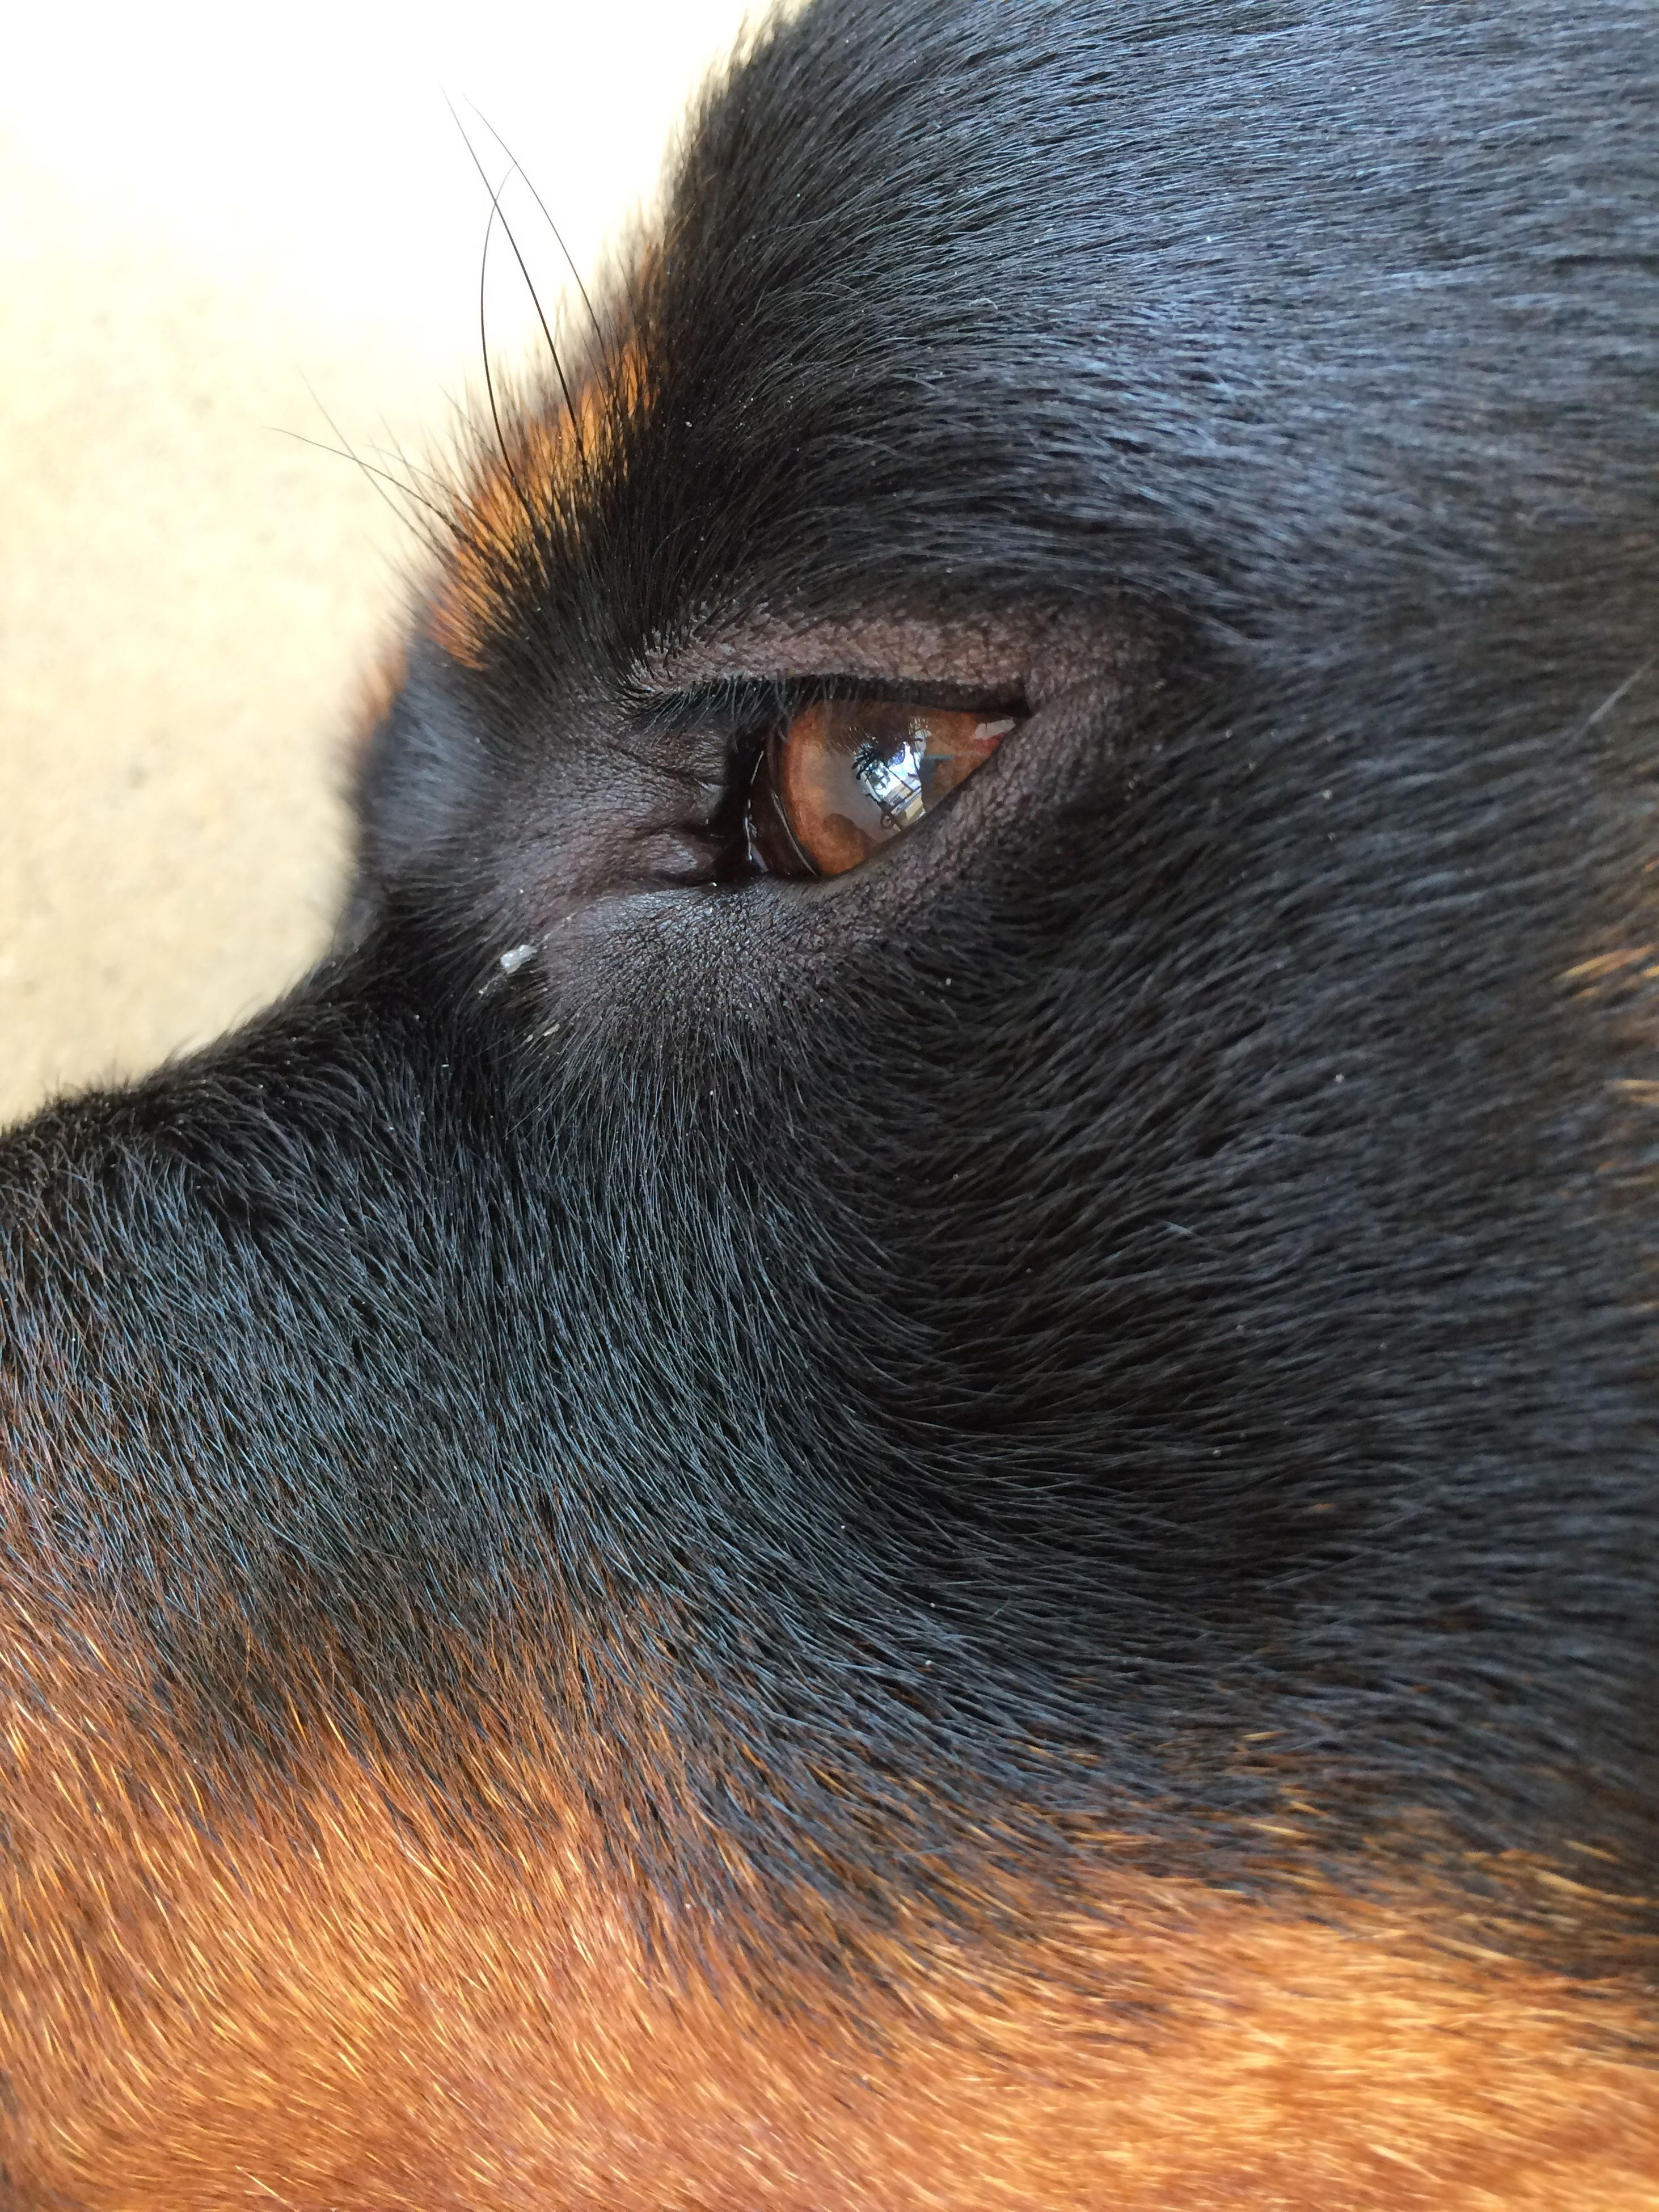 one animal, animal themes, pets, domestic animals, mammal, animal head, dog, close-up, animal body part, animal eye, part of, looking away, animal hair, portrait, zoology, no people, black color, focus on foreground, outdoors, day